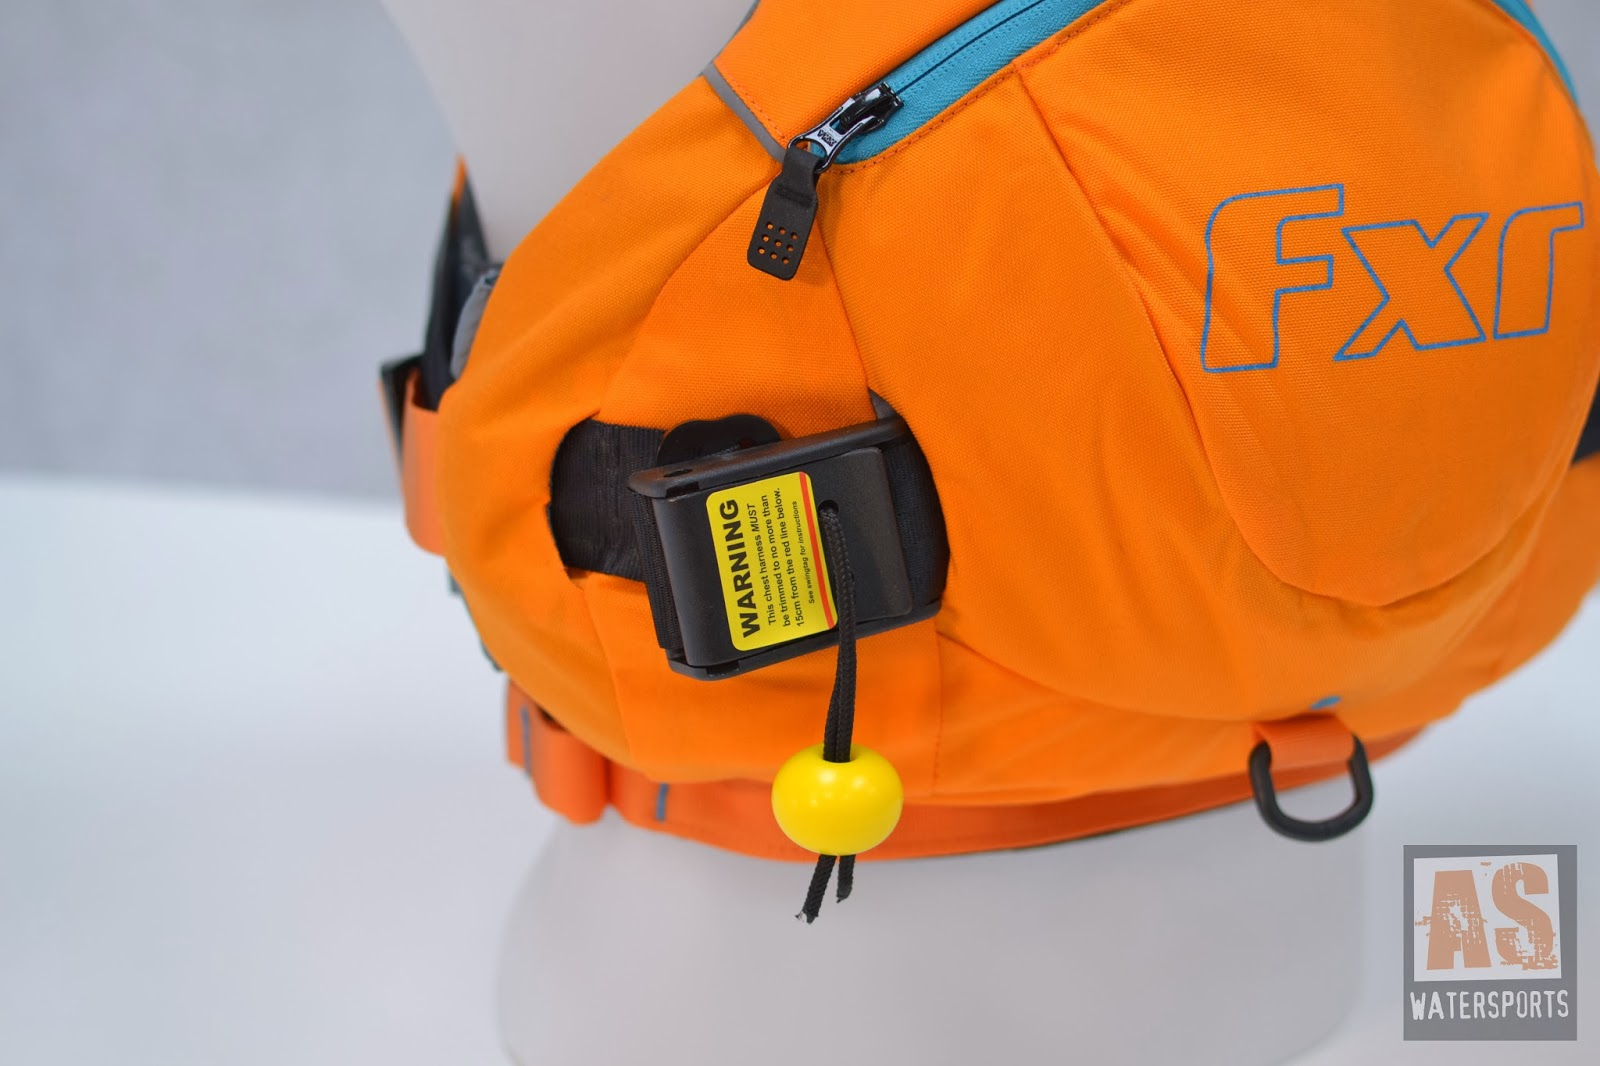 The Palm FXr Safety Harness is easy to remove